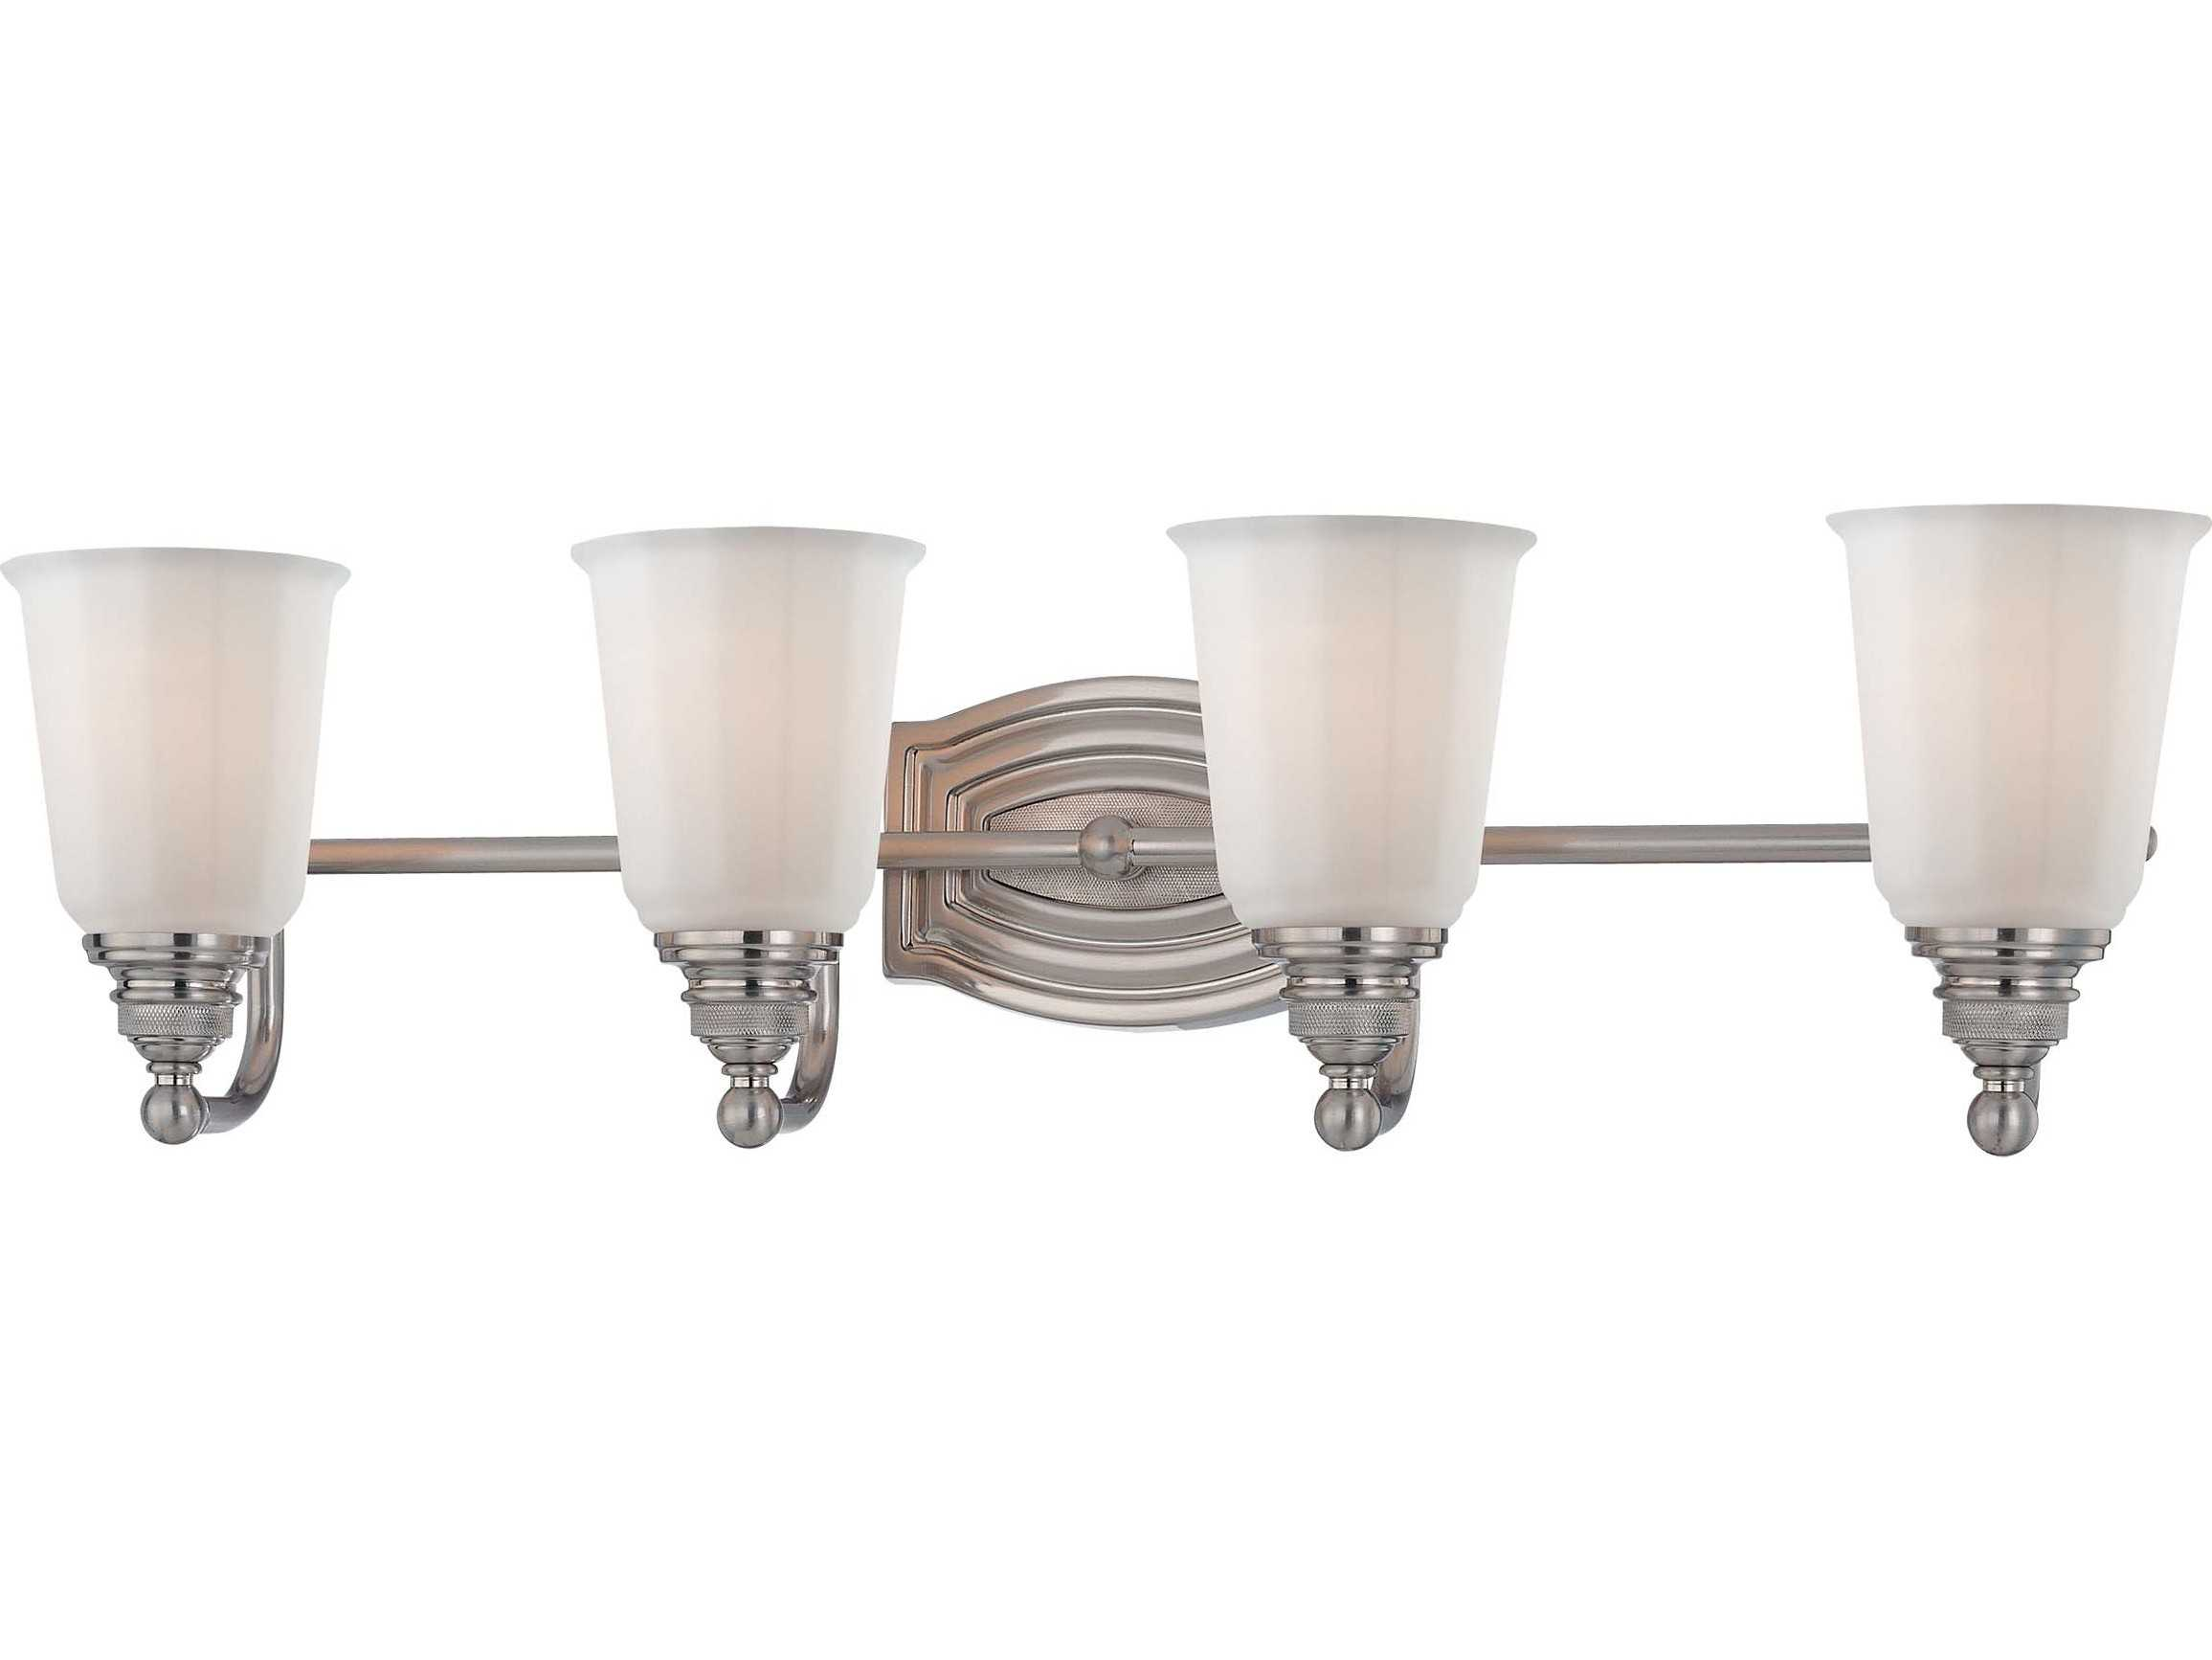 Minka Lavery Vanity Light In Brushed Nickel : Minka Lavery Clairemont Brushed Nickel Four-Light Vanity Light MGO645484